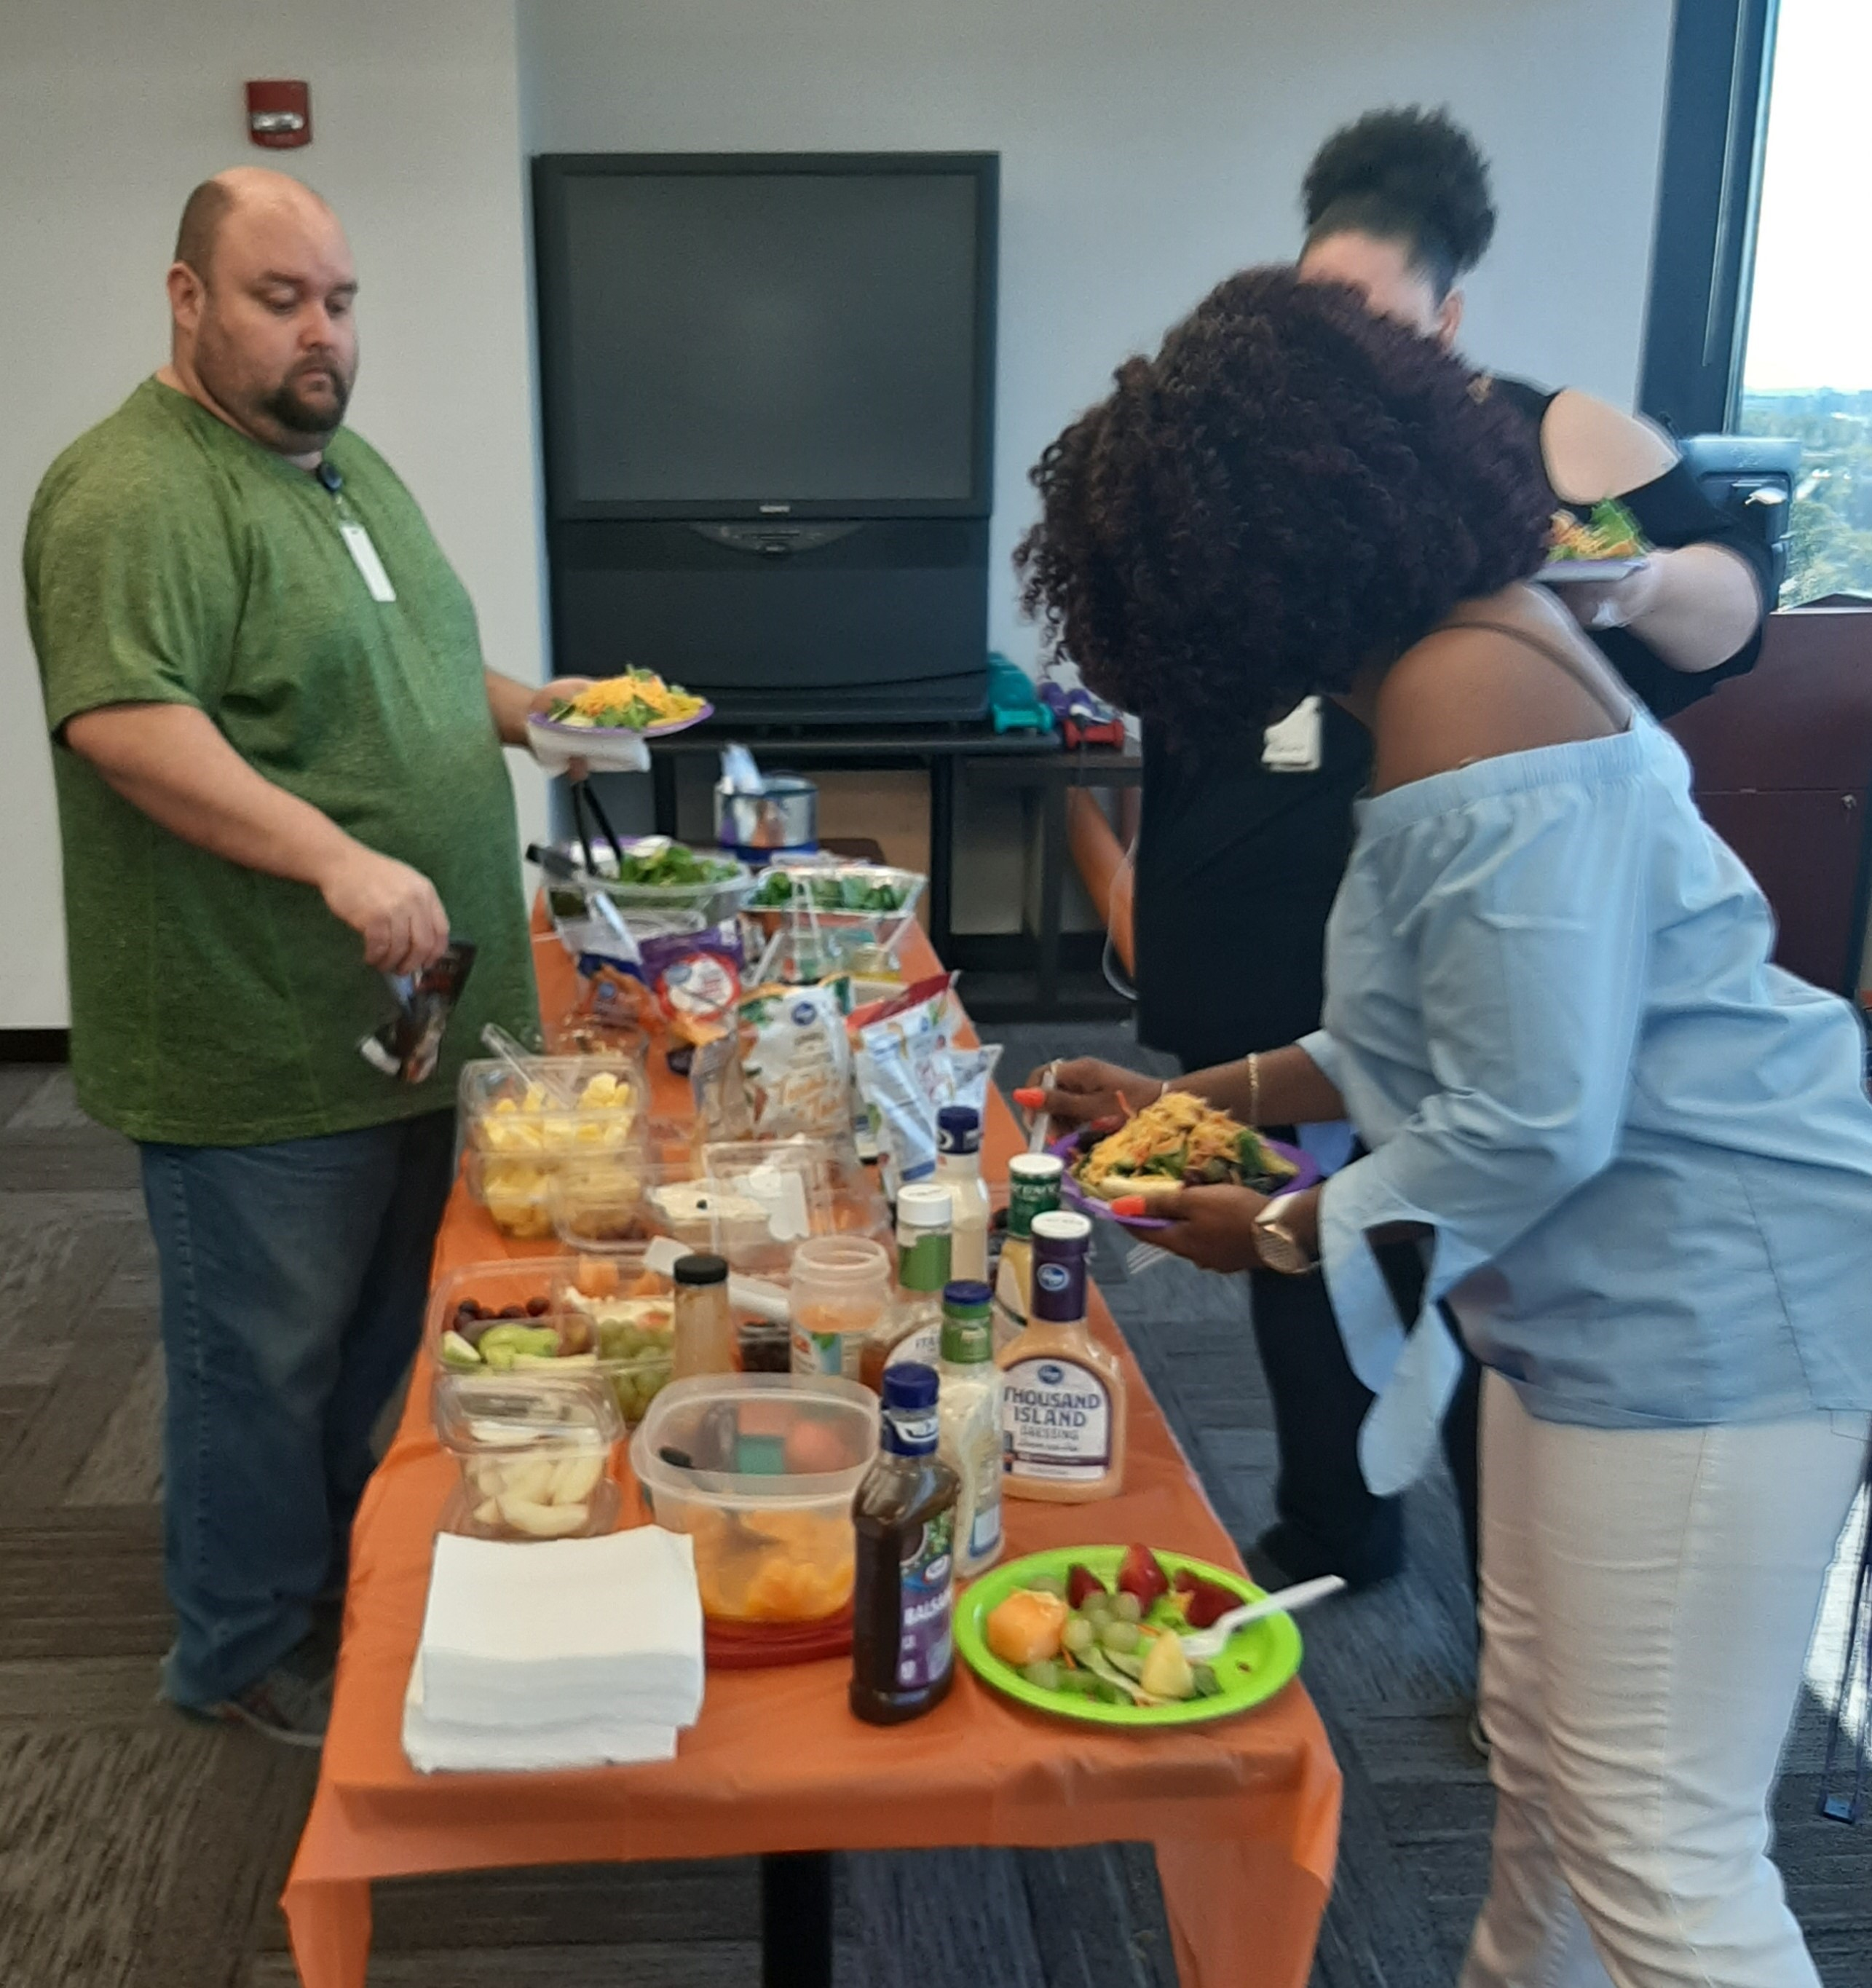 DHS recently hosted a Build a Salad Day. 20 people attended the event. They discussed wellness and nutrition.